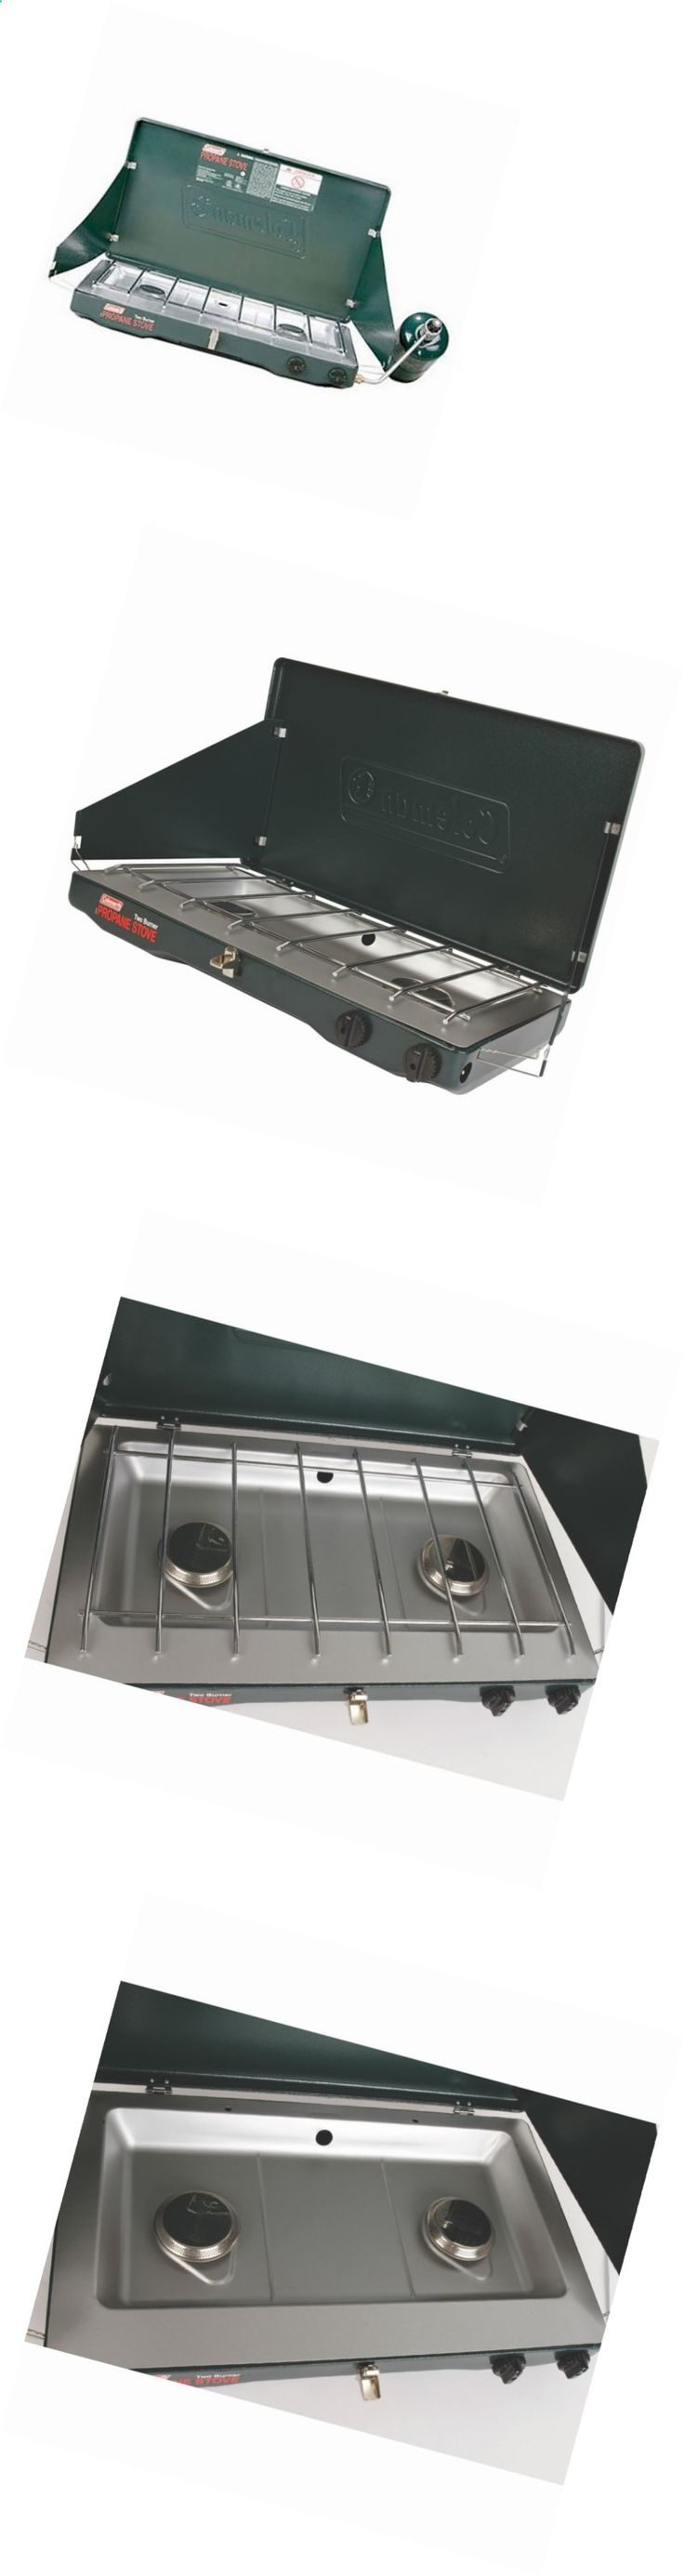 Camping stoves 181386 2 burner propane stove coleman matchlight 10000 btu camping adjustable new